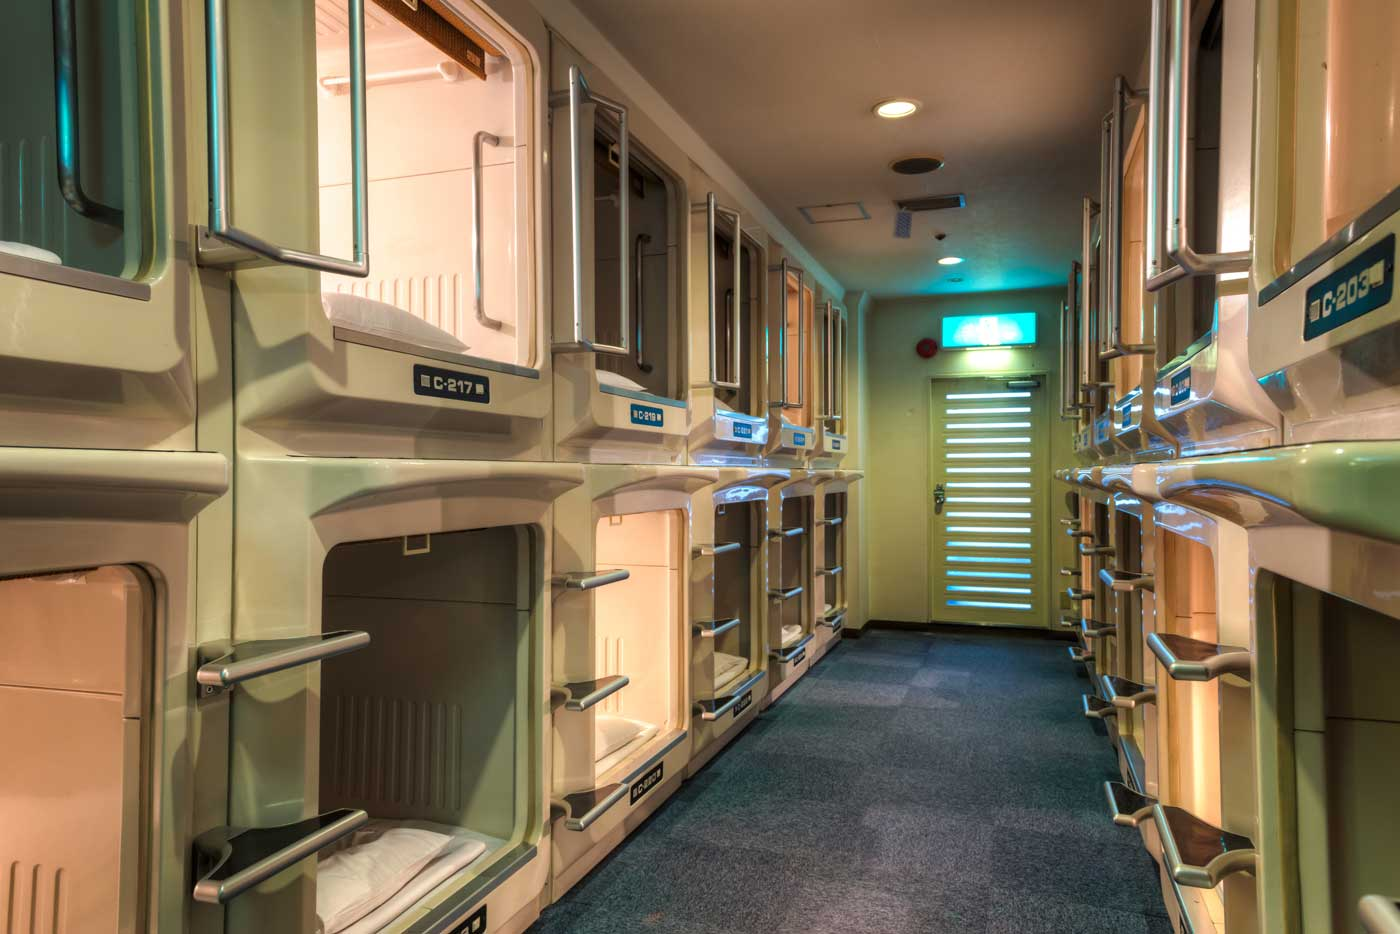 Kapselhotel Tokyo This Intriguing Capsule Hotel Is The Accommodation You Need